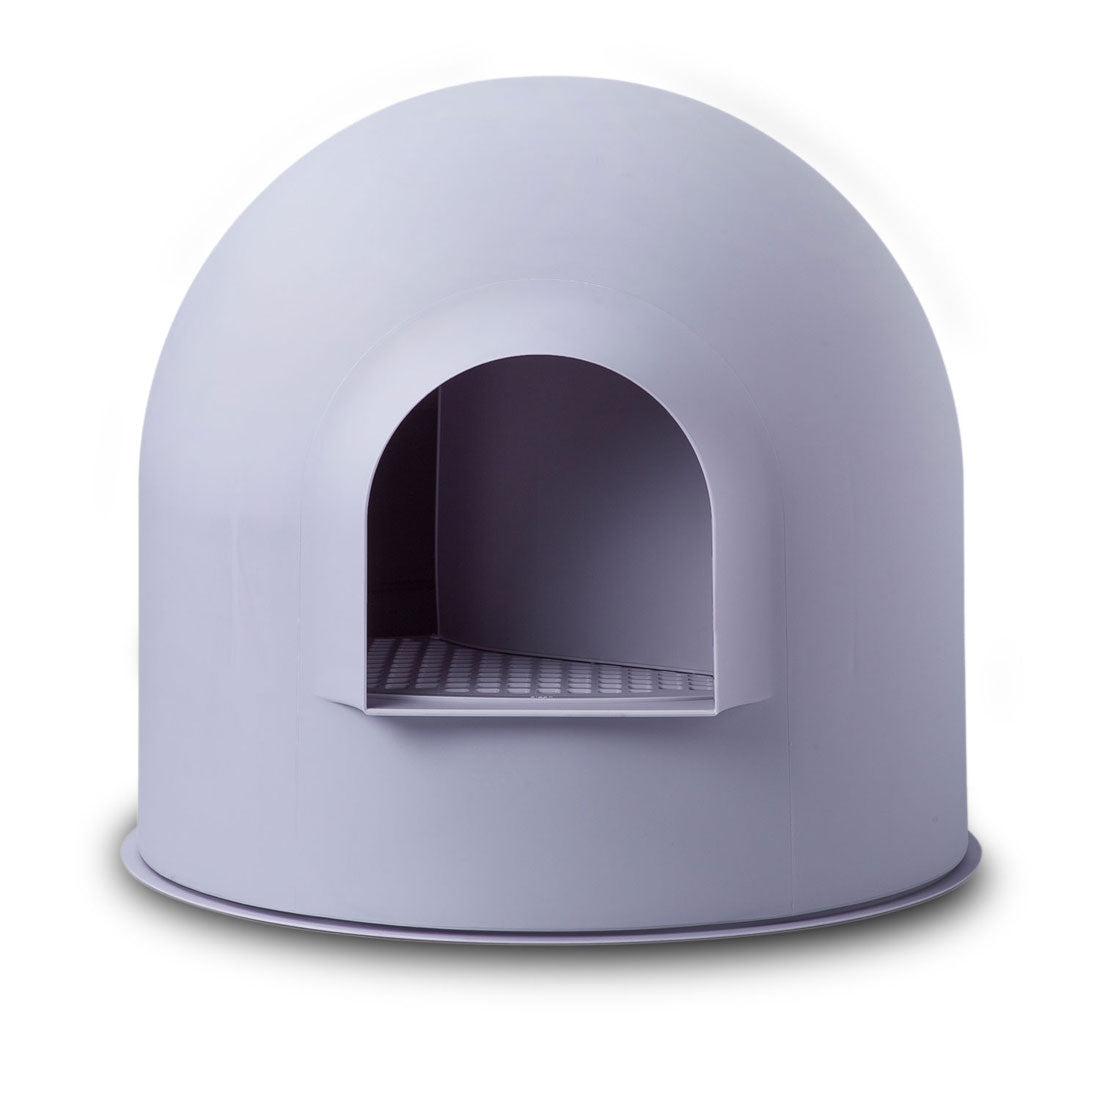 Pidan Igloo Snow House Portable Hooded Cat Toilet Litter Box Tray House with Scoop - purple